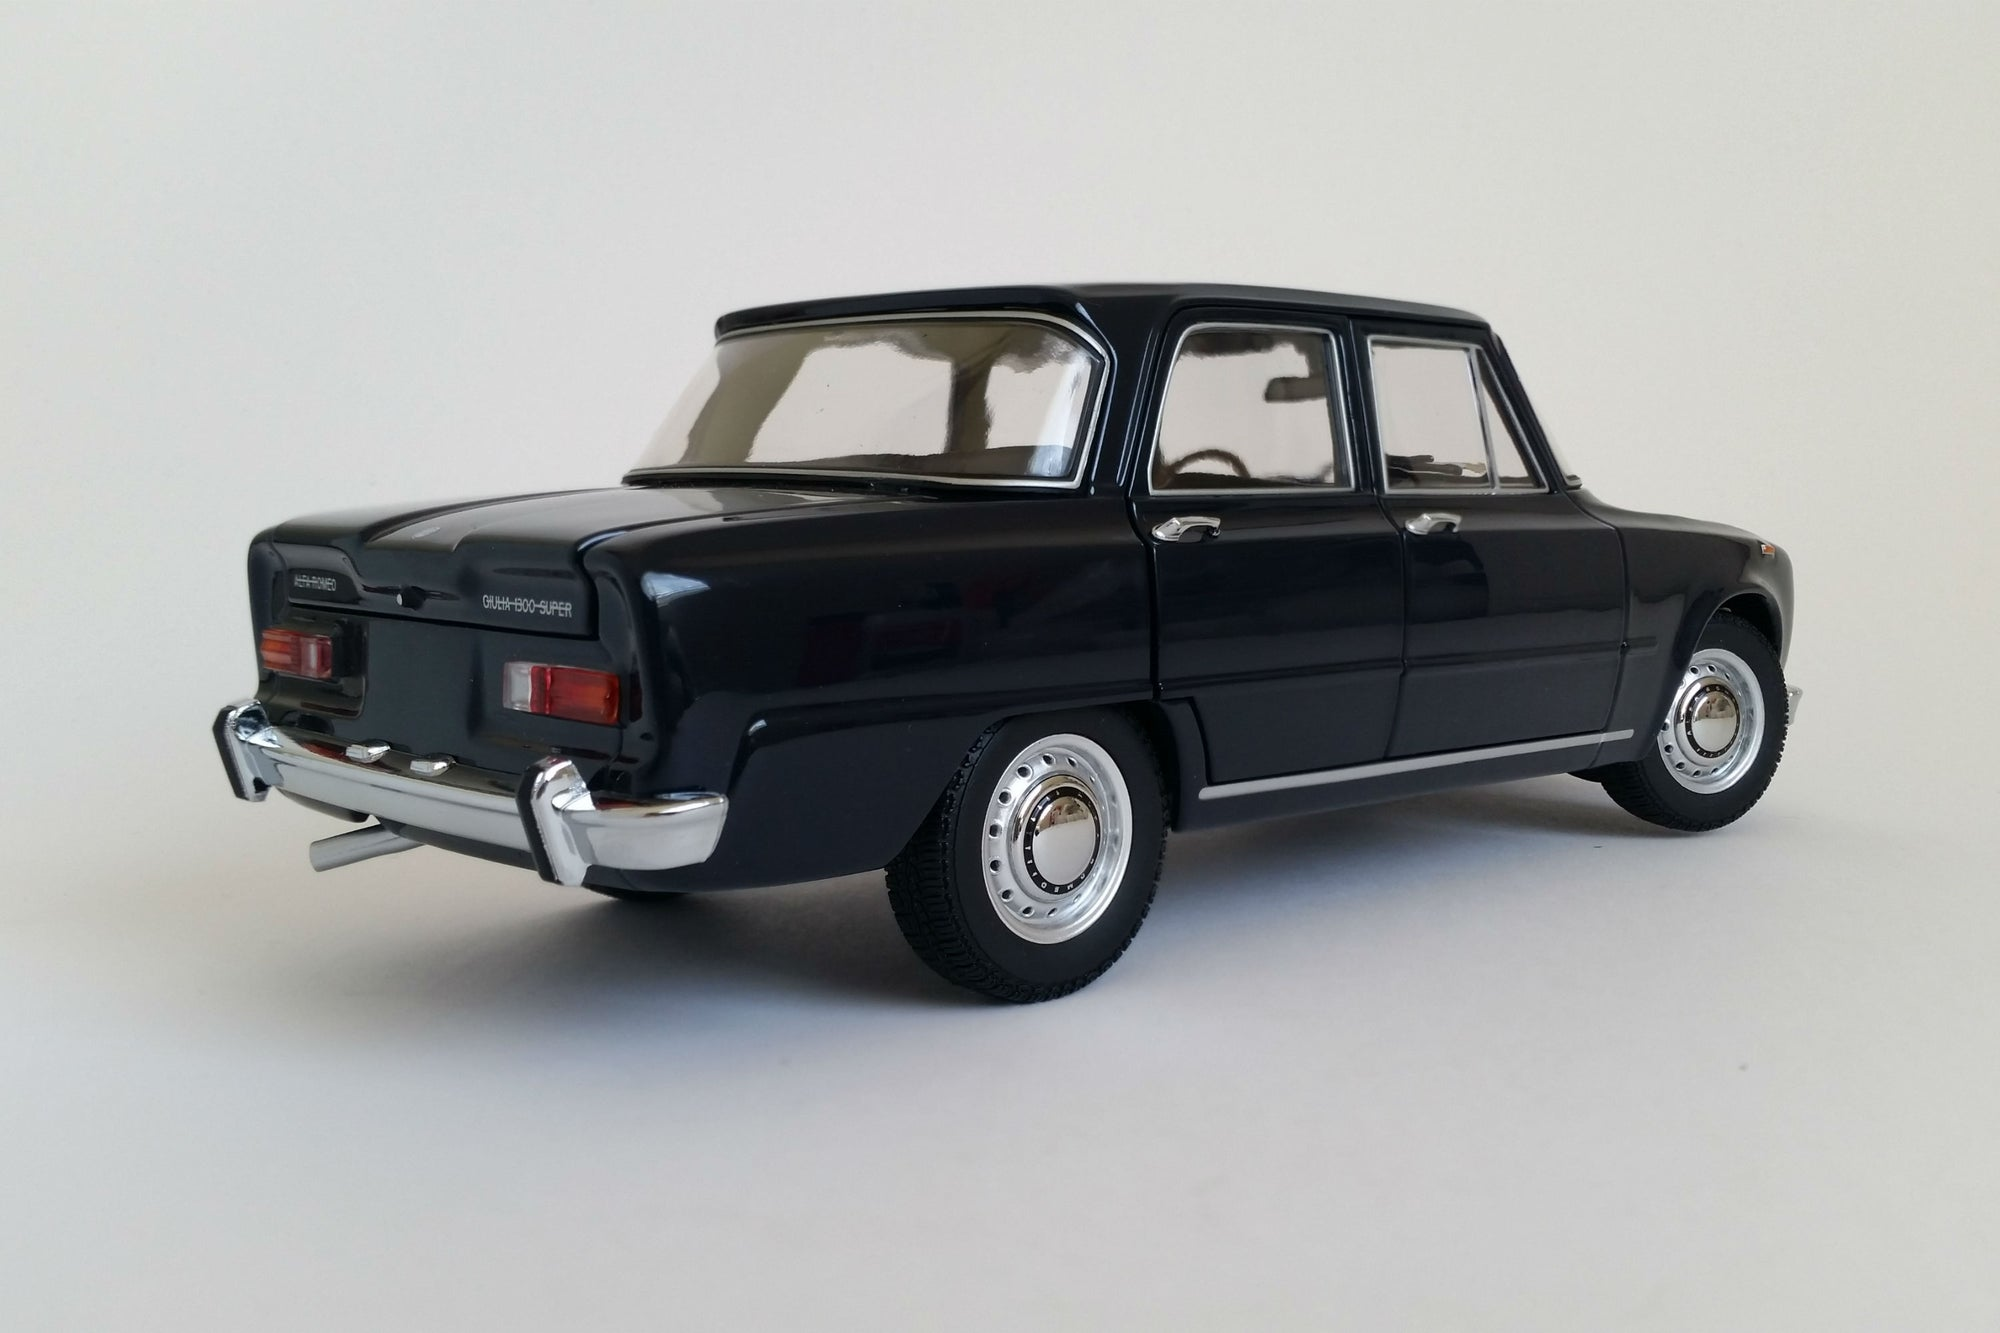 alfa romeo giulia 1300 sedan (1966) - 1:18 scale diecast model car